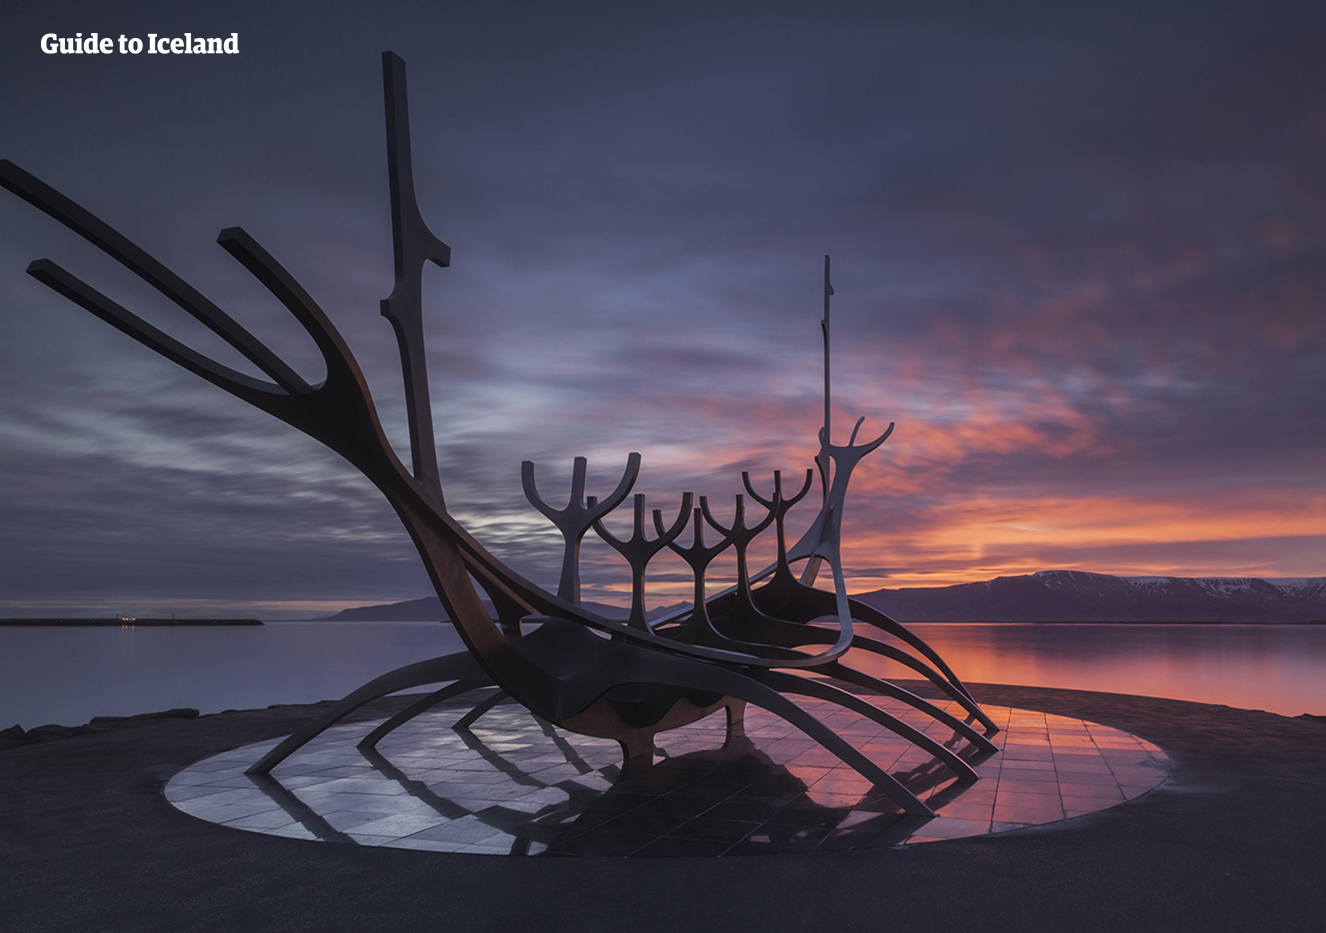 Reykjavík has a multitude of sights and attractions, such as The Sun Voyager sculpture.